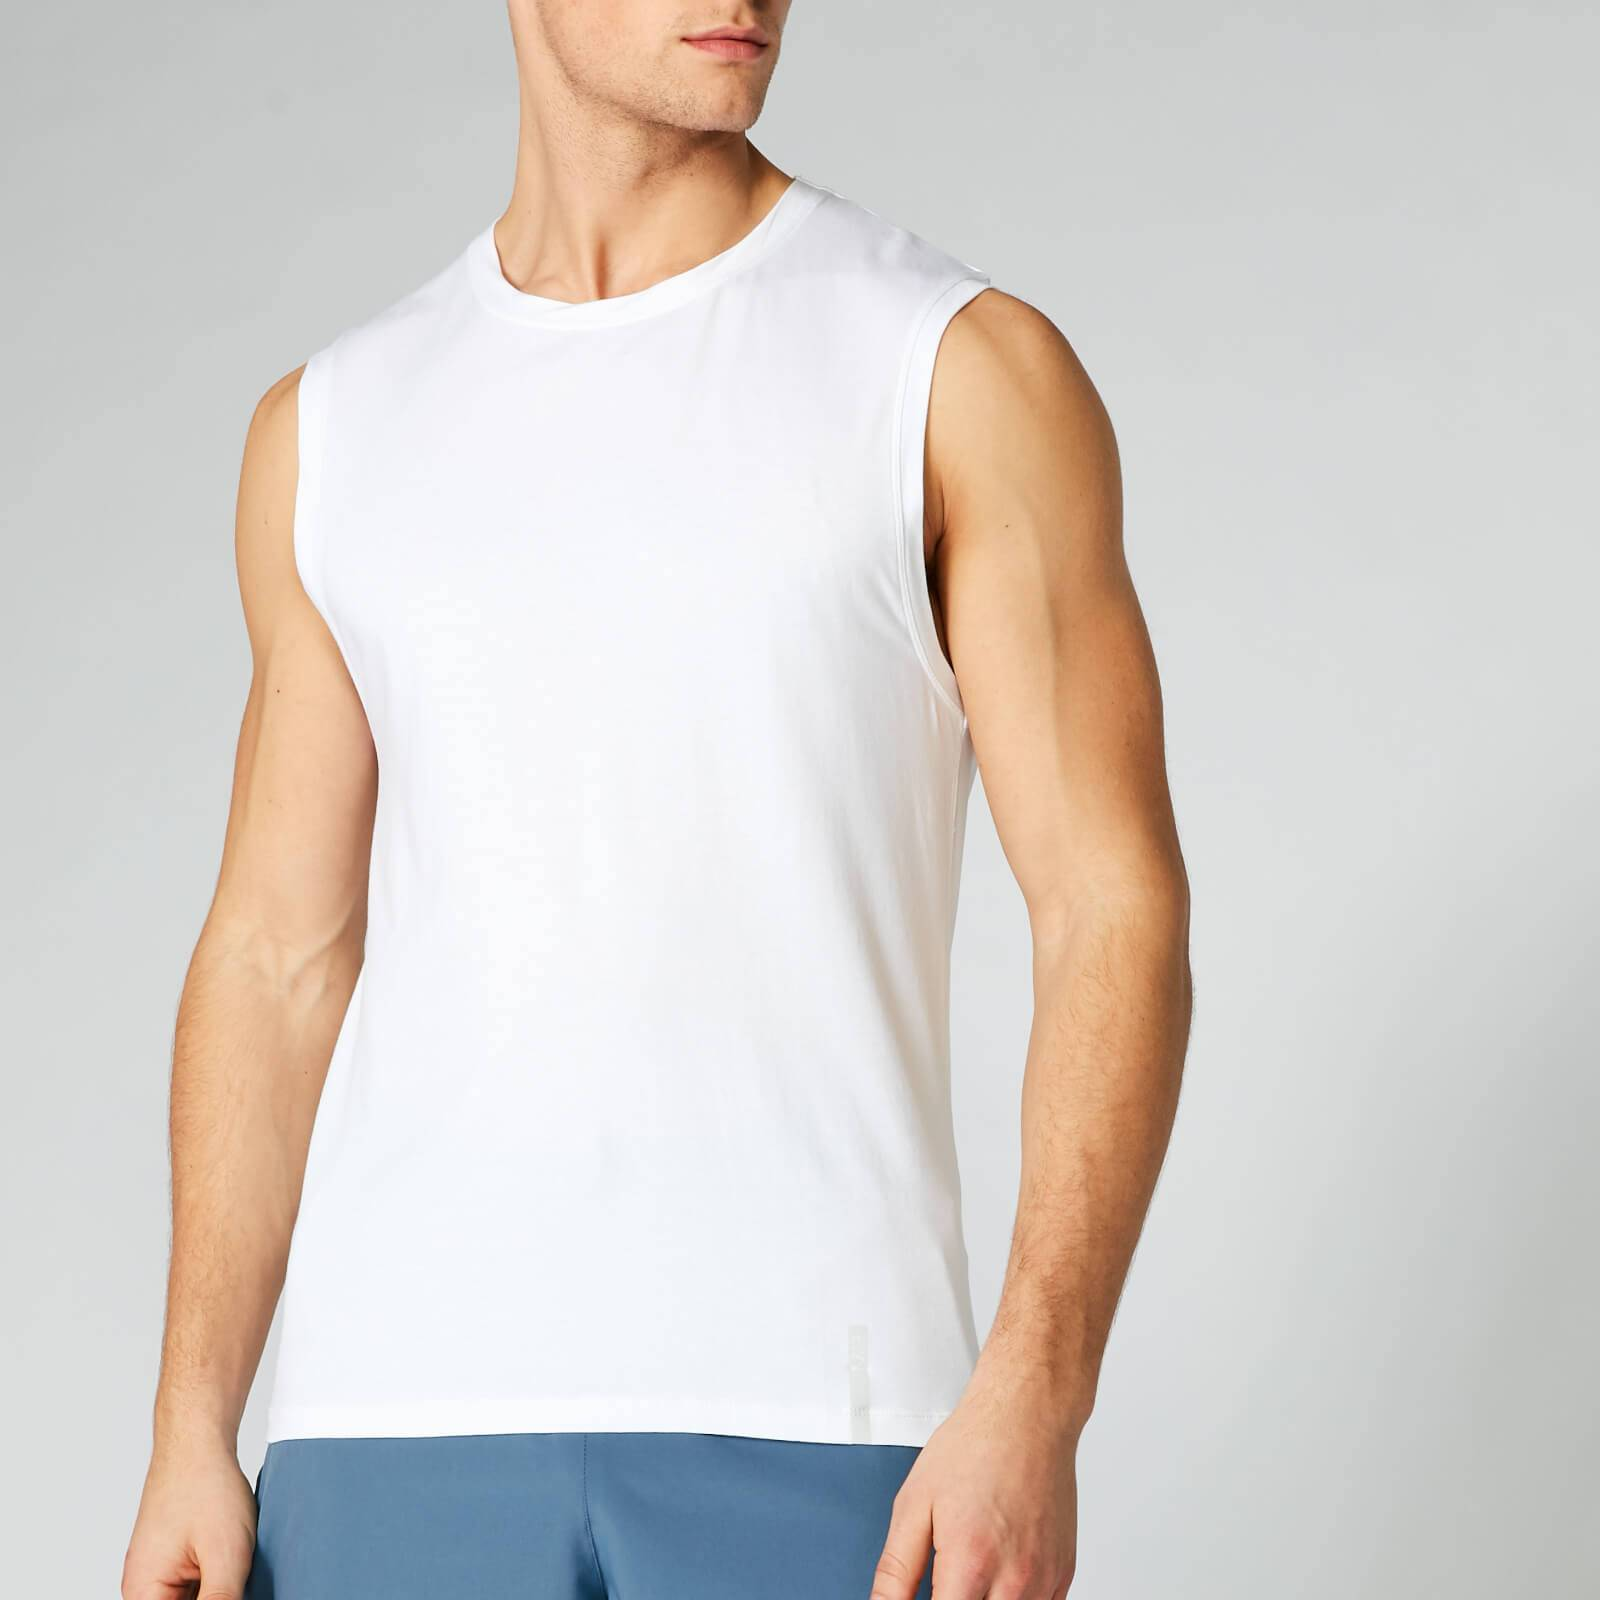 Myprotein Luxe Classic Sleeveless T-Shirt - White - L